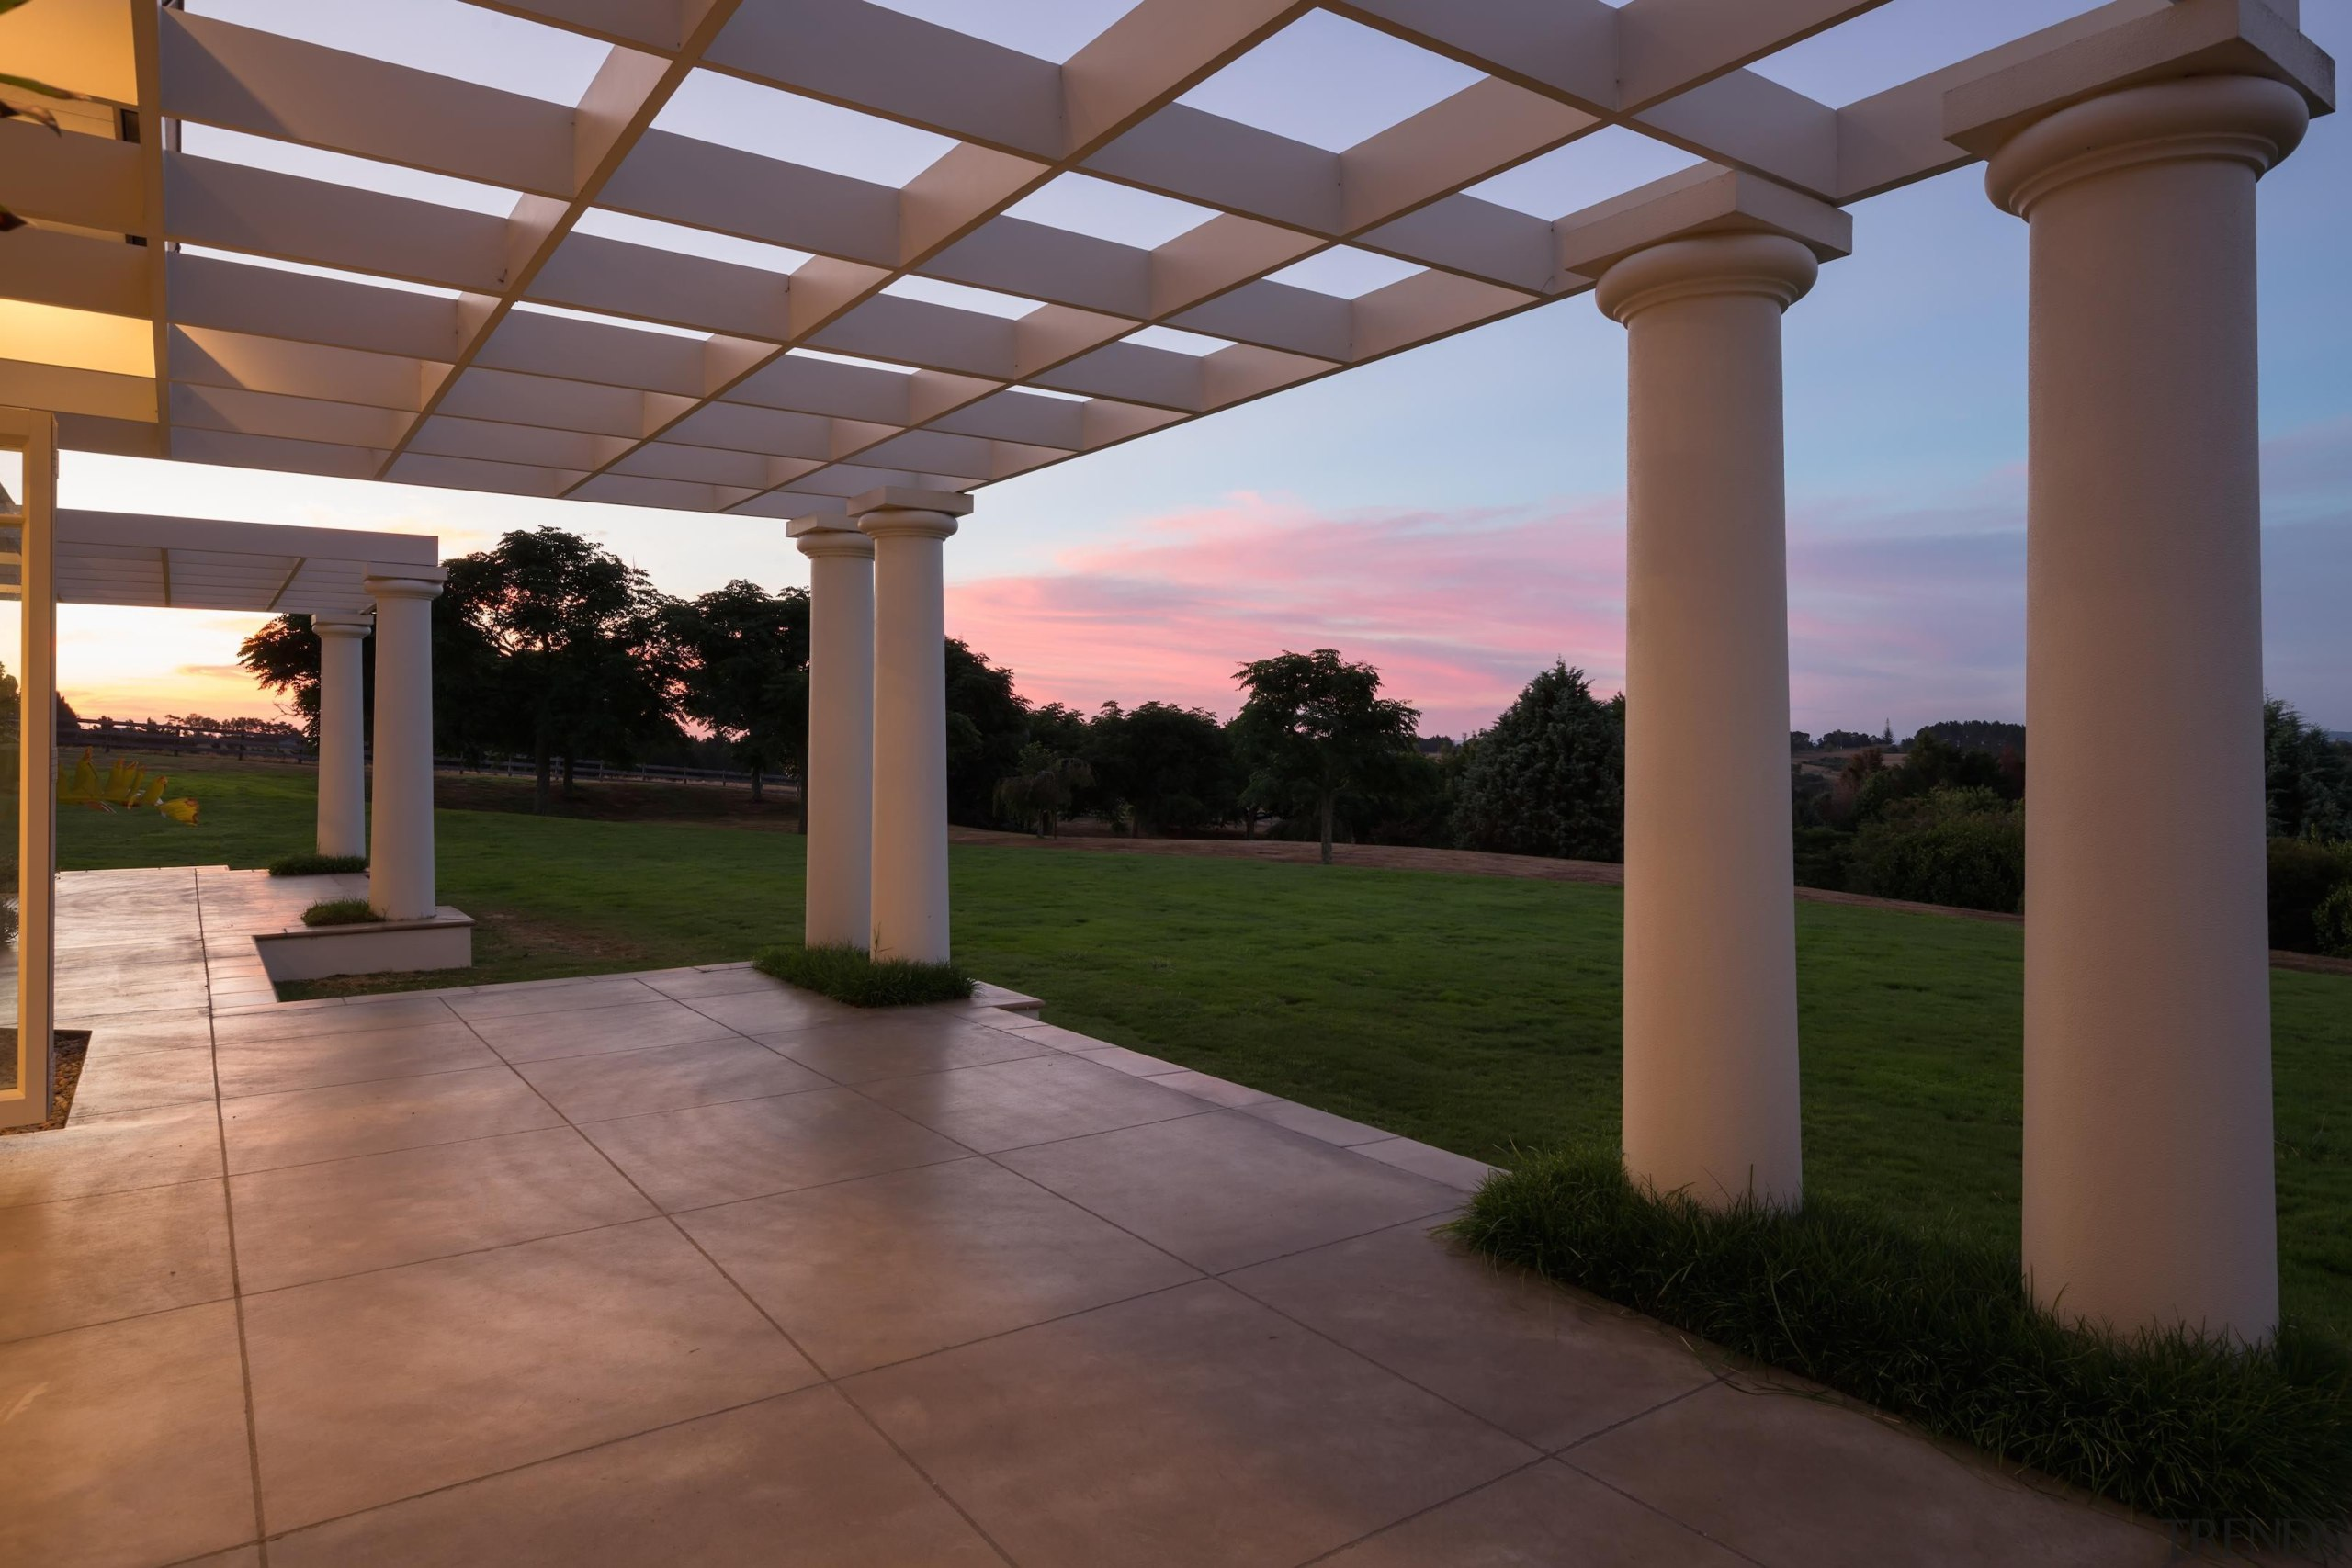 img1143.jpg - img1143.jpg - column | estate | column, estate, hacienda, outdoor structure, pergola, property, real estate, sky, structure, brown